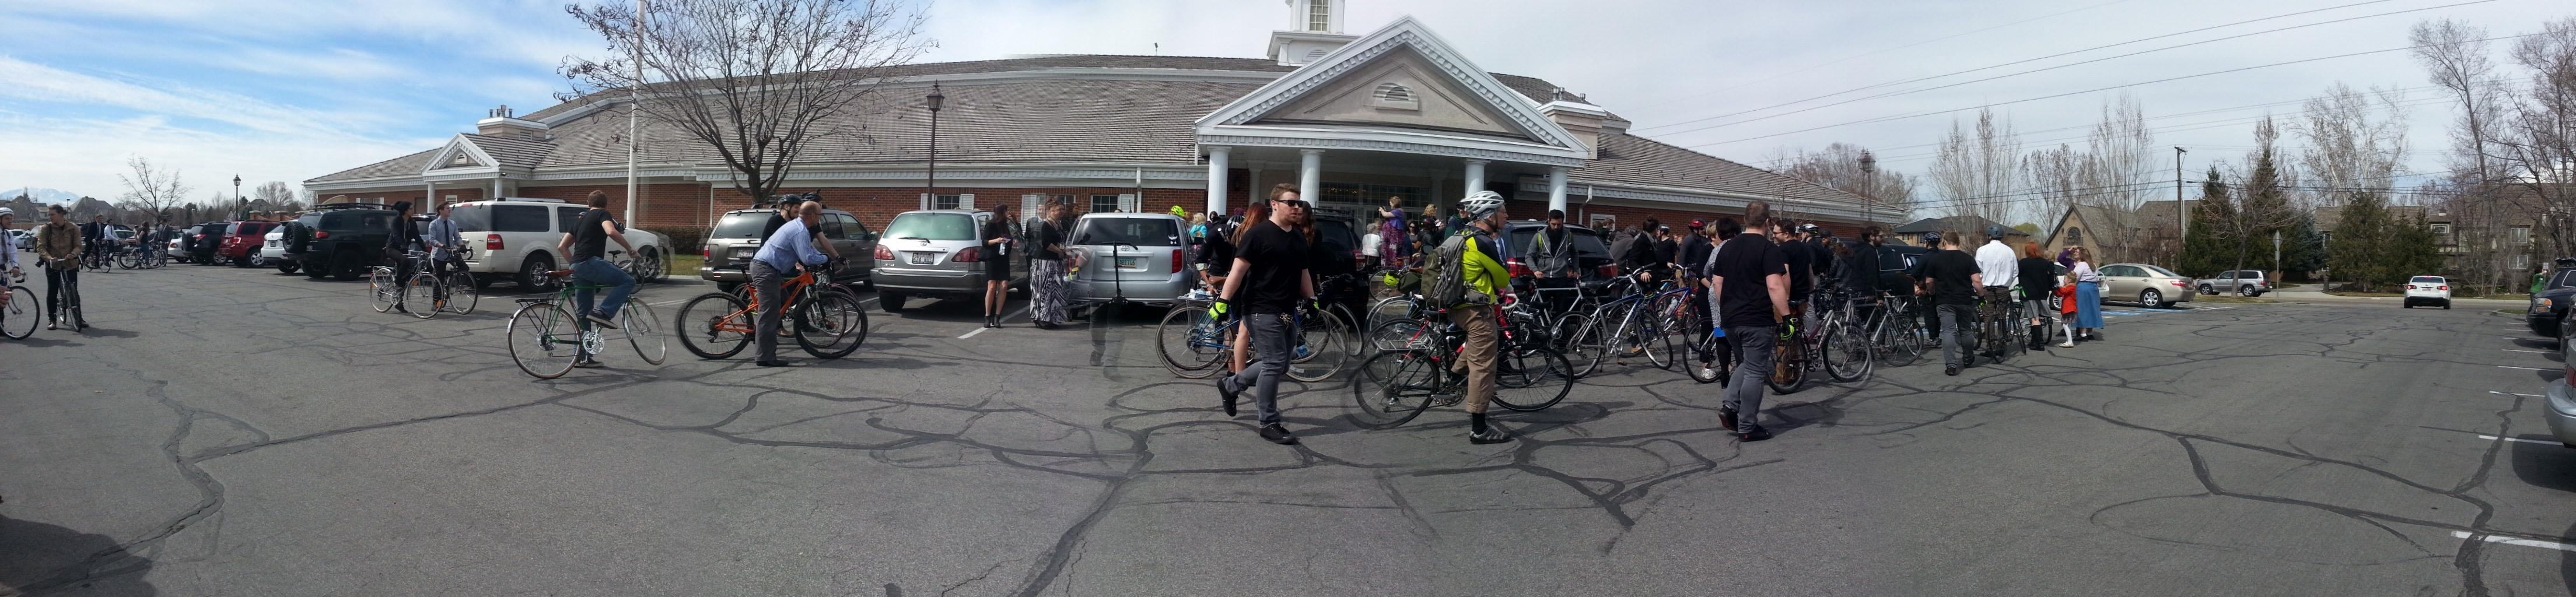 100 Cyclists at funeral